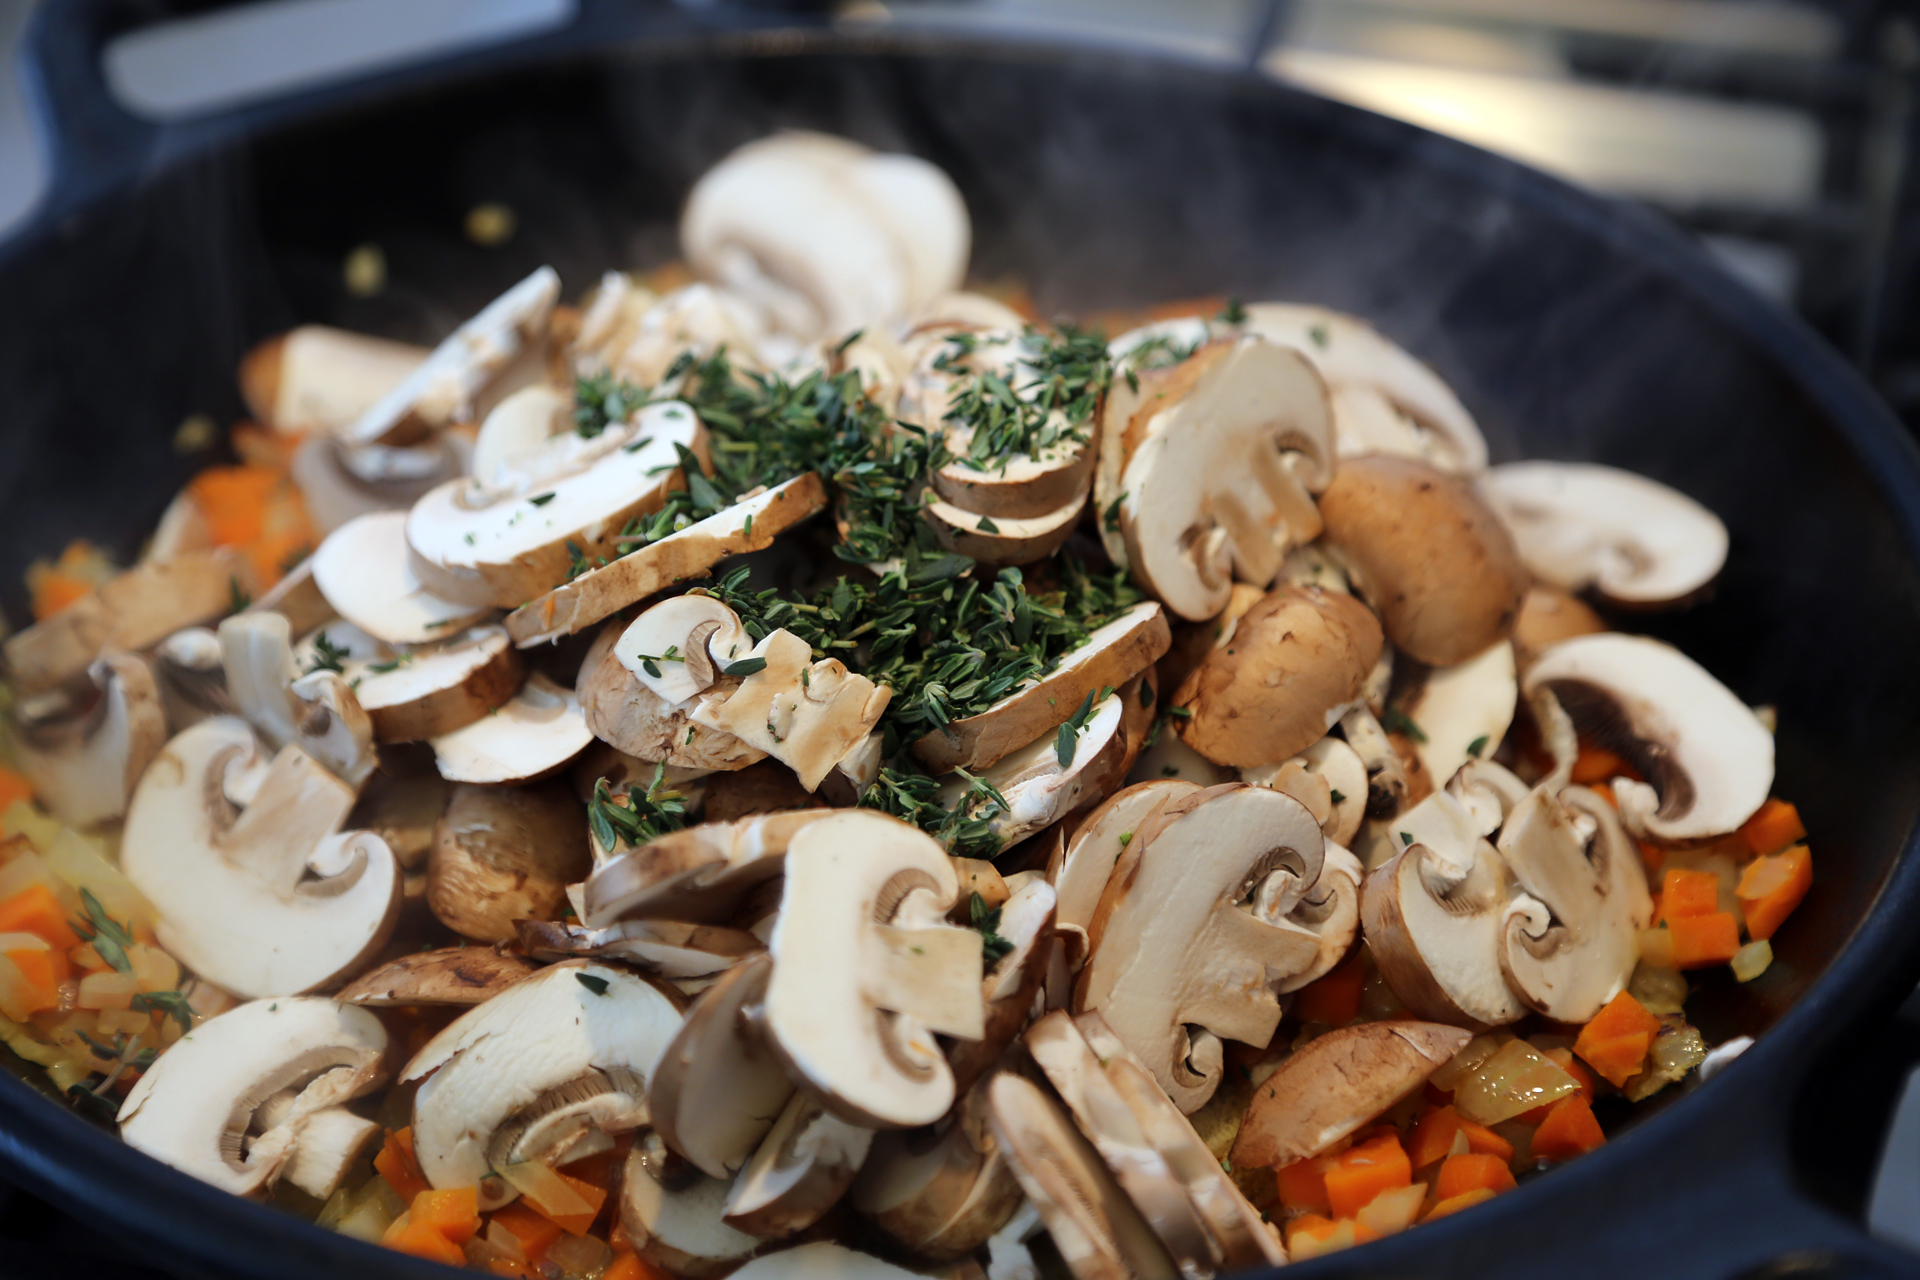 Add another 1 tbsp butter then add the mushrooms and thyme. Cook, stirring, until tender, about 5 minutes.